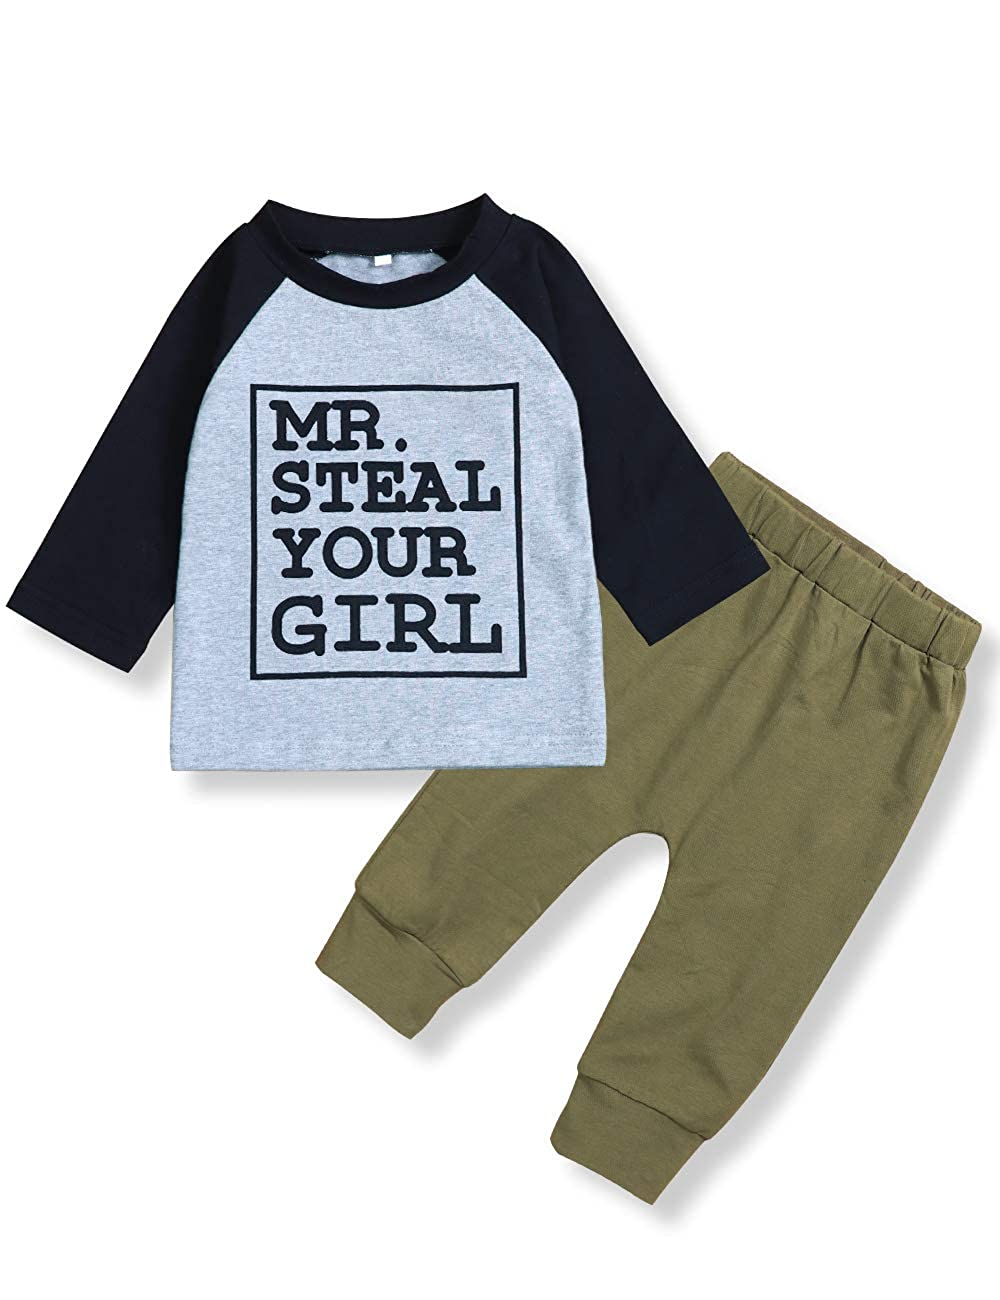 d187bad6 Toddler Baby Infant Boy Clothes Mr Steal Your Girl Tops +Camouflage Pants  Outfit Set